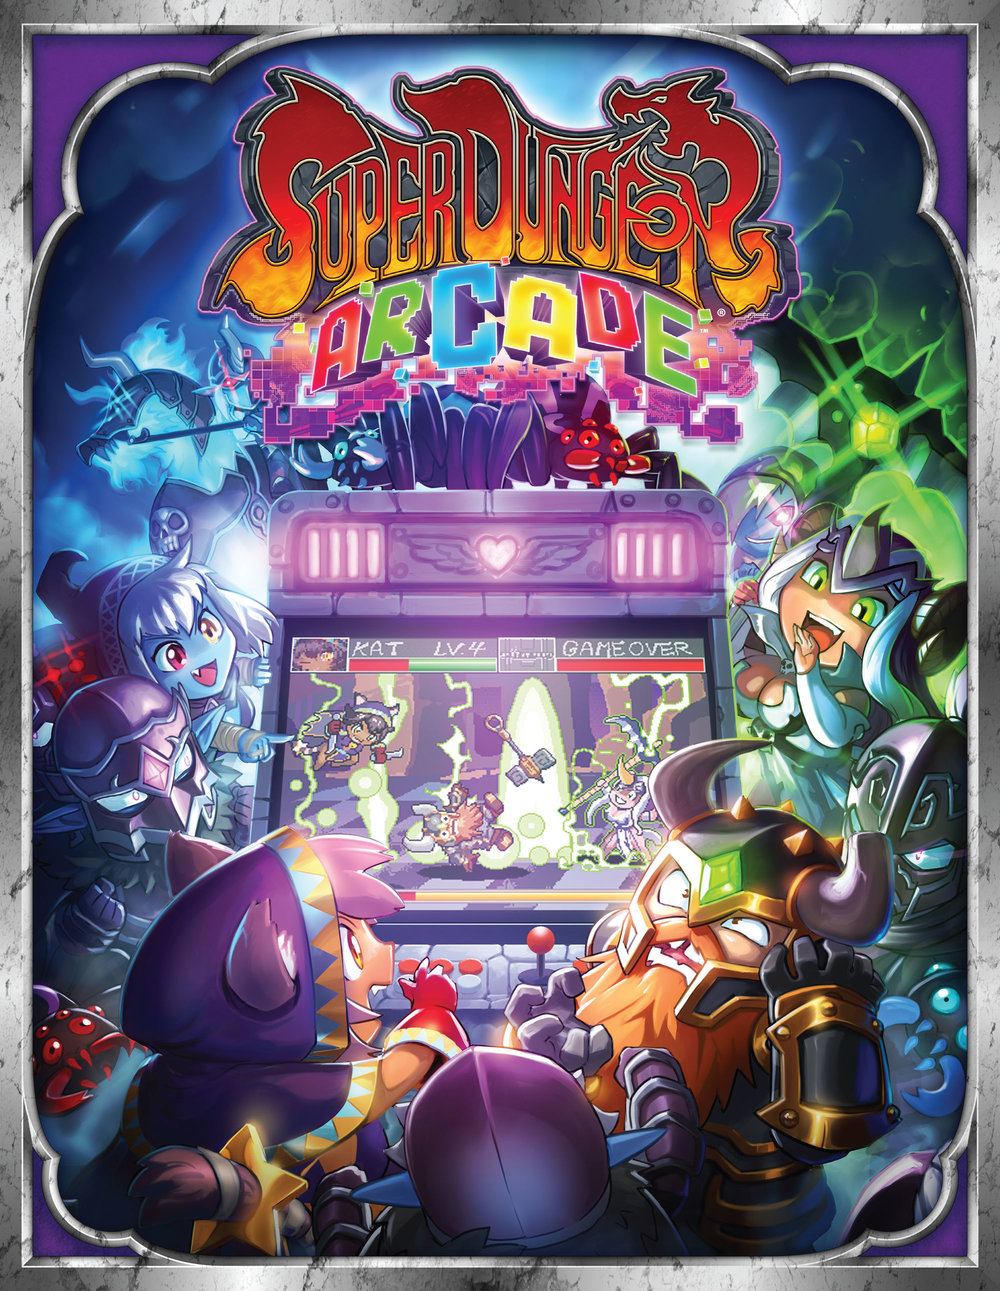 Super Dungeon Arcade rule book cover art